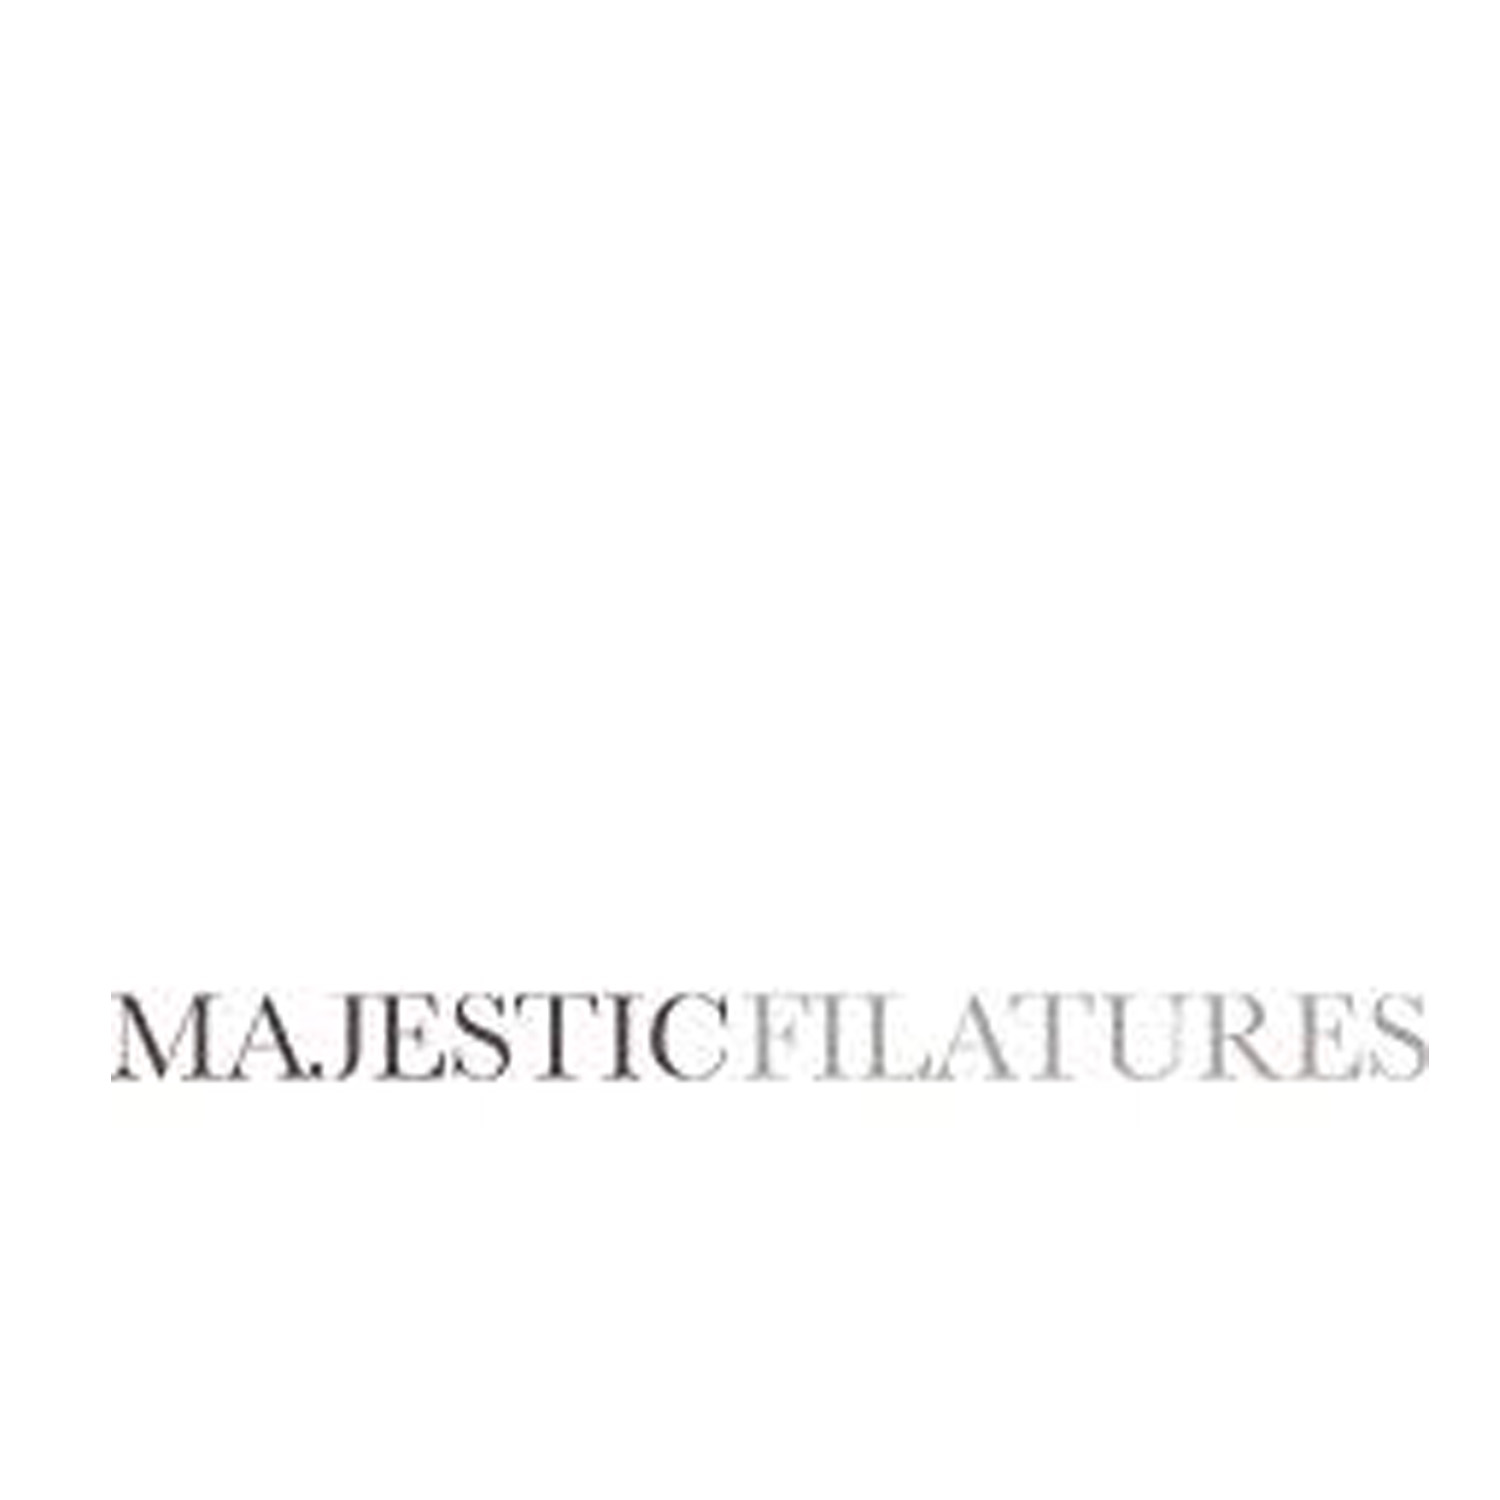 MAJESTIC FILATURES  Specializing in handcrafted lightweight essential knits for women with an exquisite attention to detail. (France)